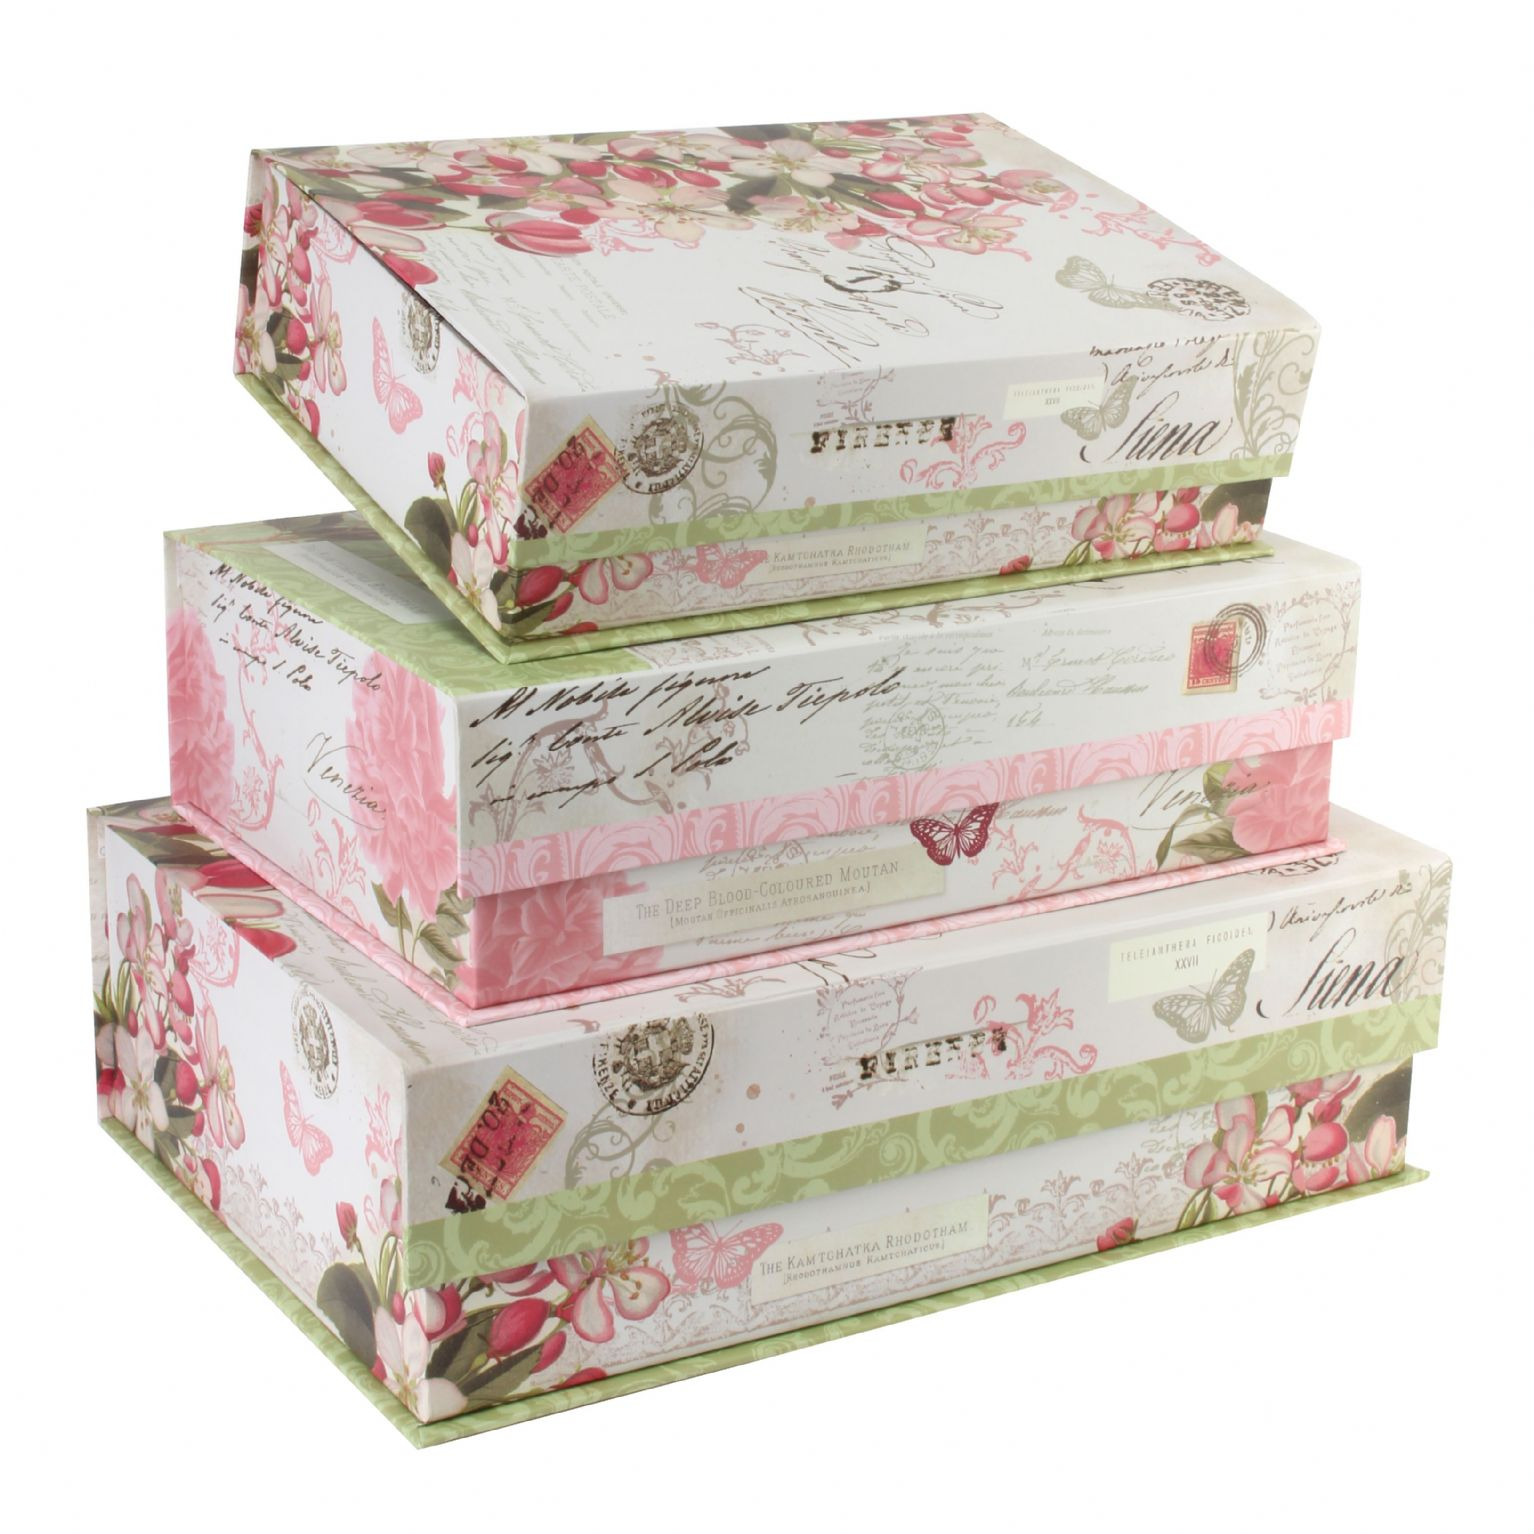 Decorative Boxes Uk: Pretty Floral Storage Boxes